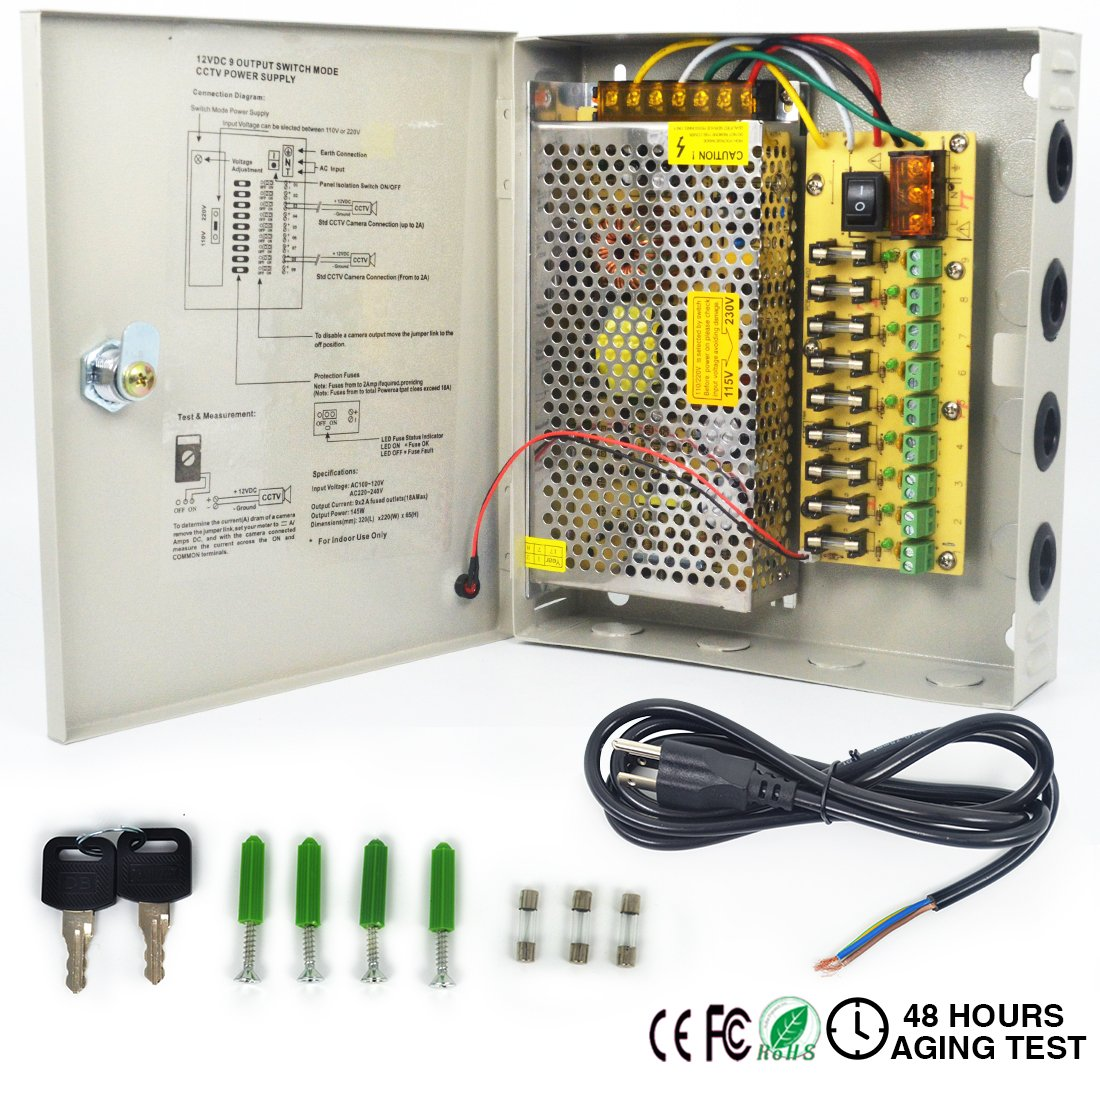 LETOUR DC Power Supply 9 Channel Port Output 12V 150W CCTV Electrical Box Distributed Power Supply Box with AC Power Line and Key (9CH 12.5A 150W)